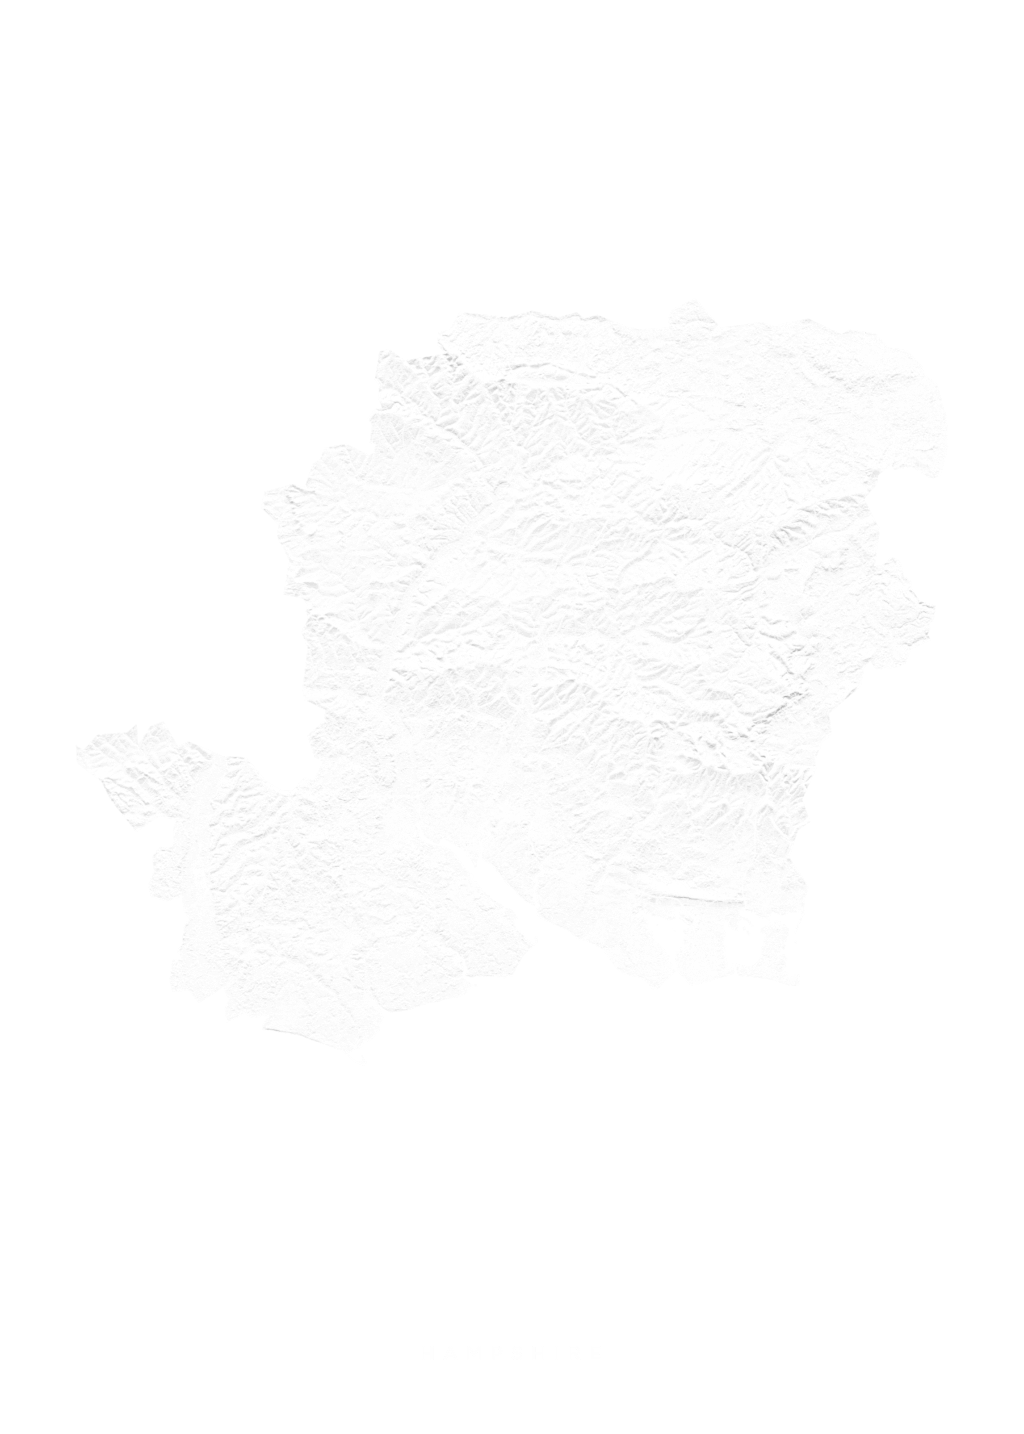 Hampshire wall map